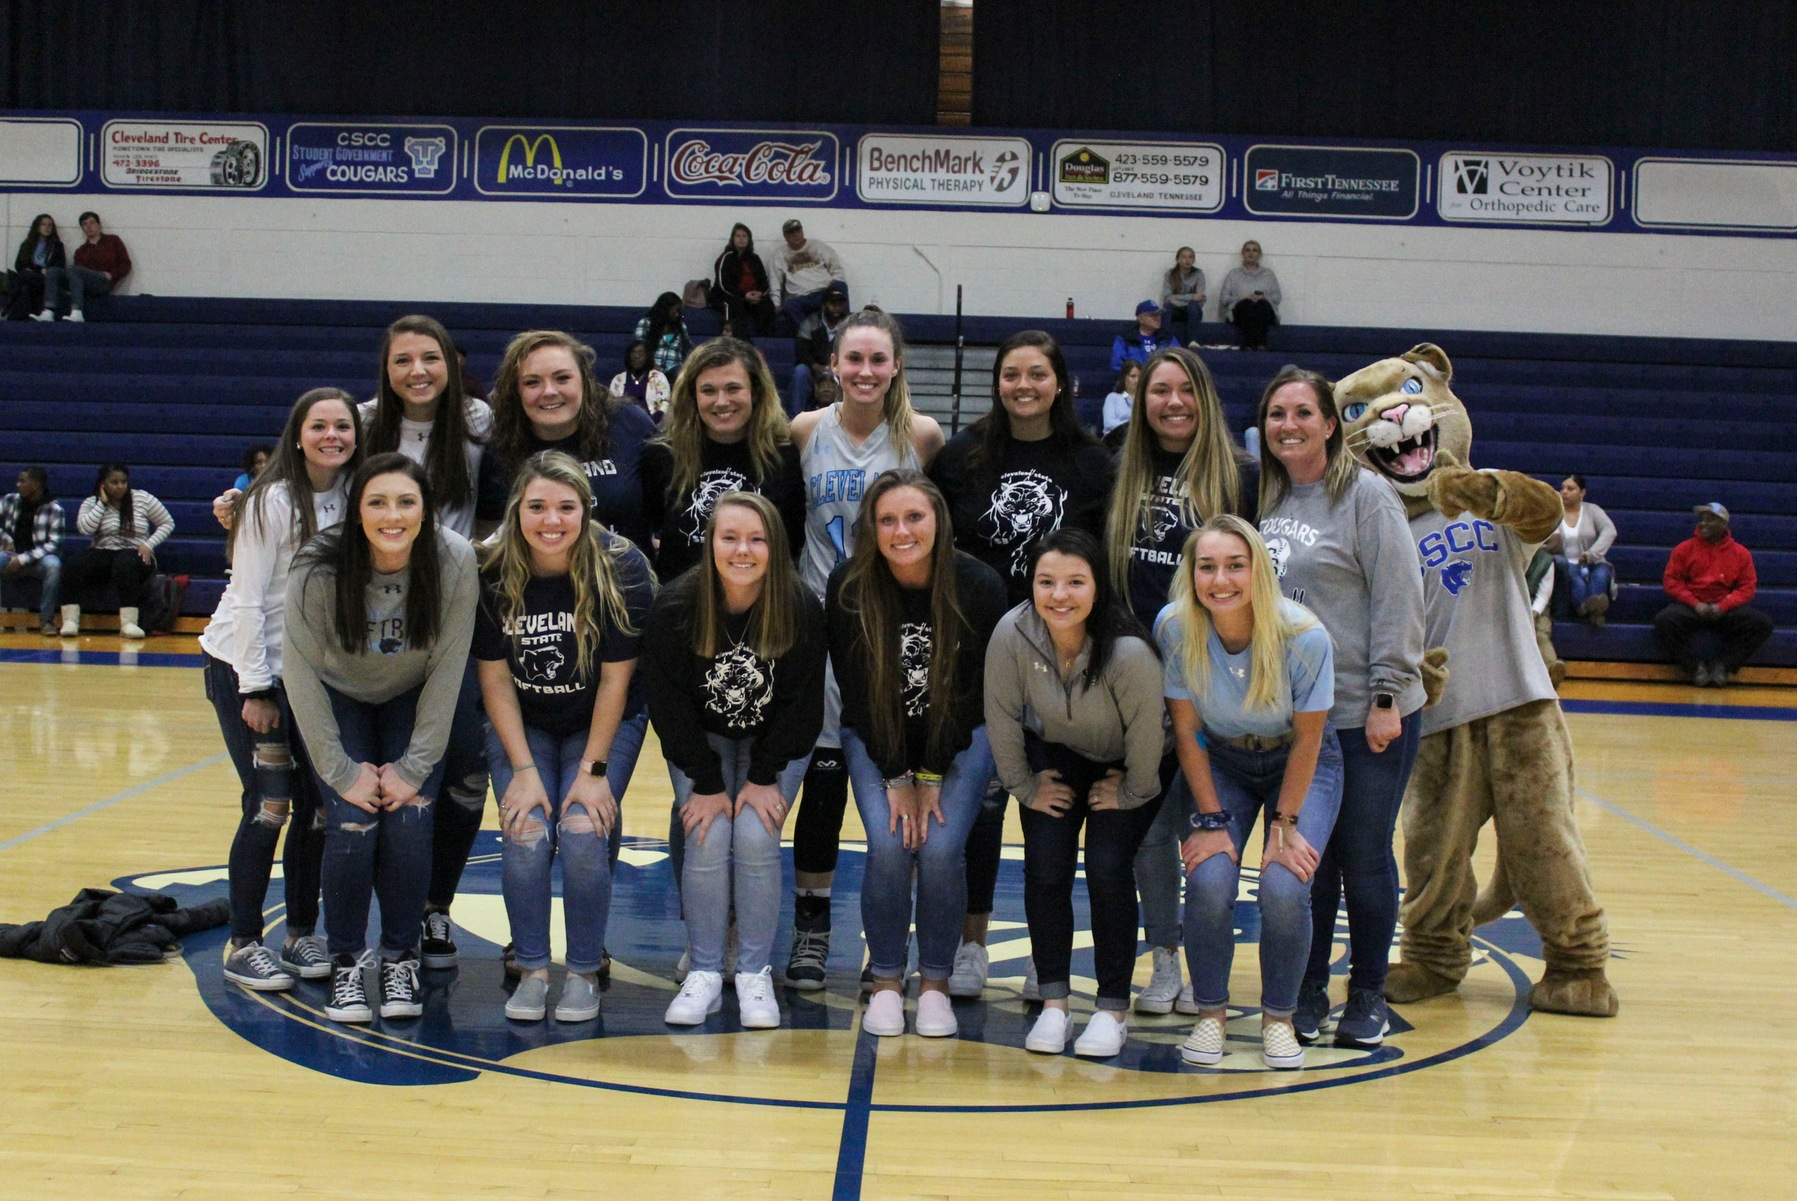 2018 State Runner-Up Lady Cougar Softball Team Recognized